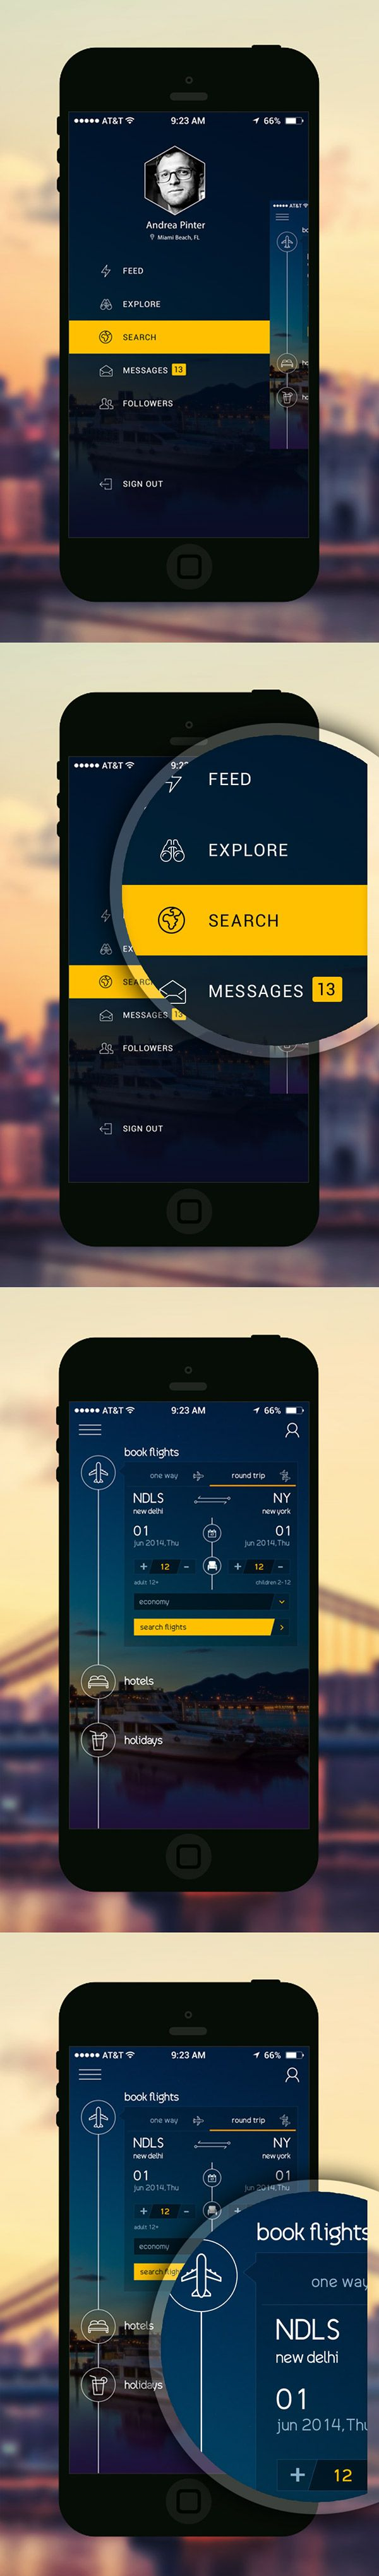 Free Booking App PSD According to iPhone 6+ on Behance